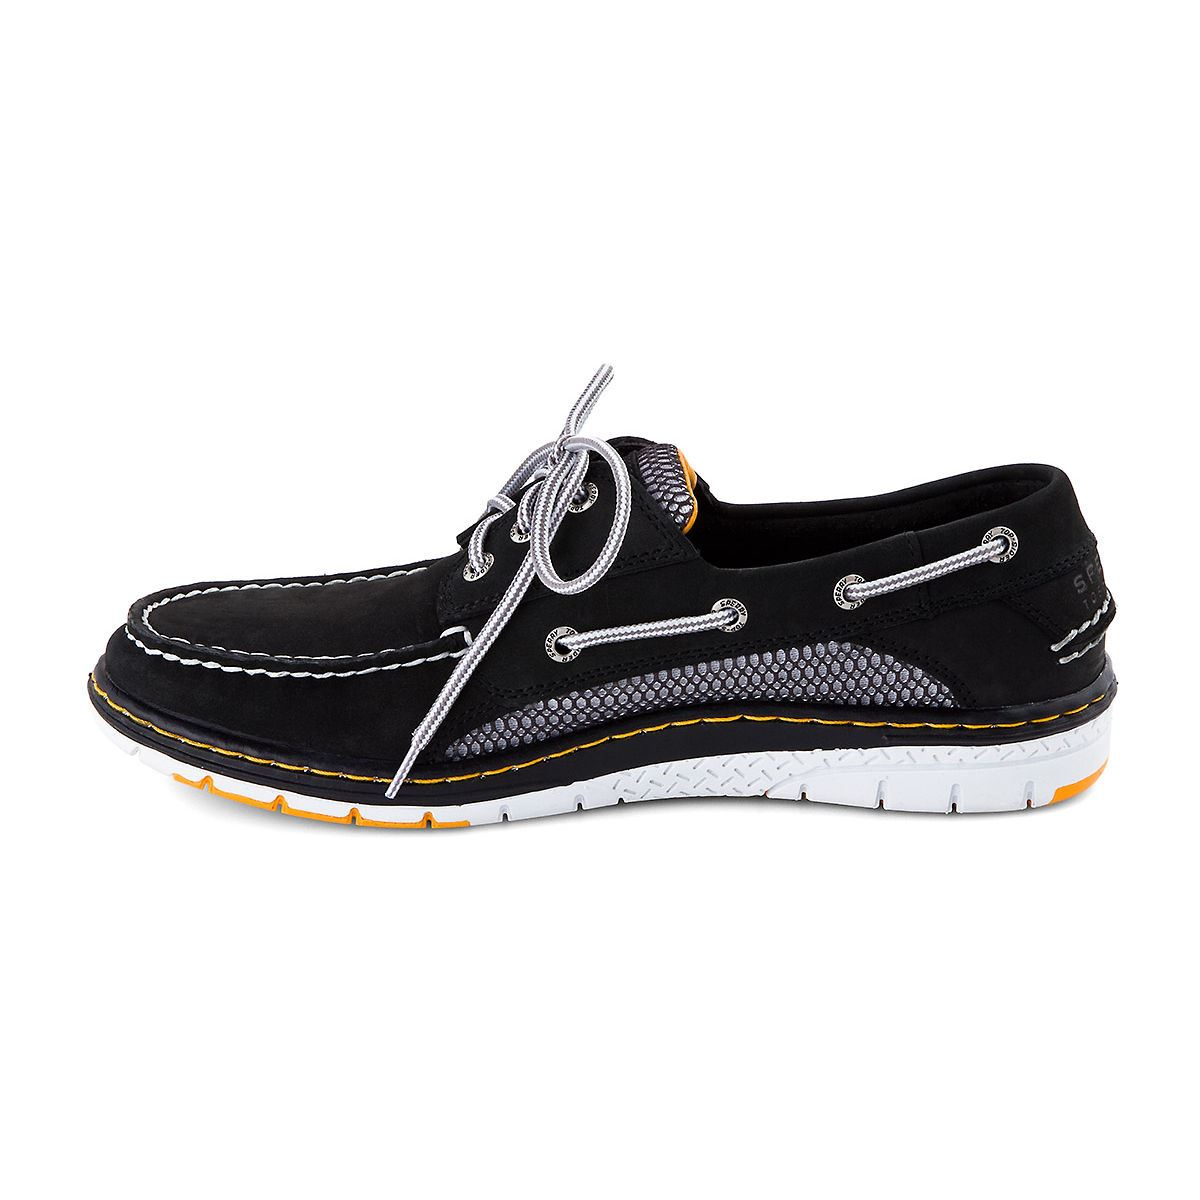 Women's Boat Shoes. Shop Sperry for authentic women's boat shoes and women's dock shoes. Sperry boat shoes have outfitted people with innovative design, fashion, and comfort from the deck to the sea to the street since , and they continue their tradition of enduring style for women today.